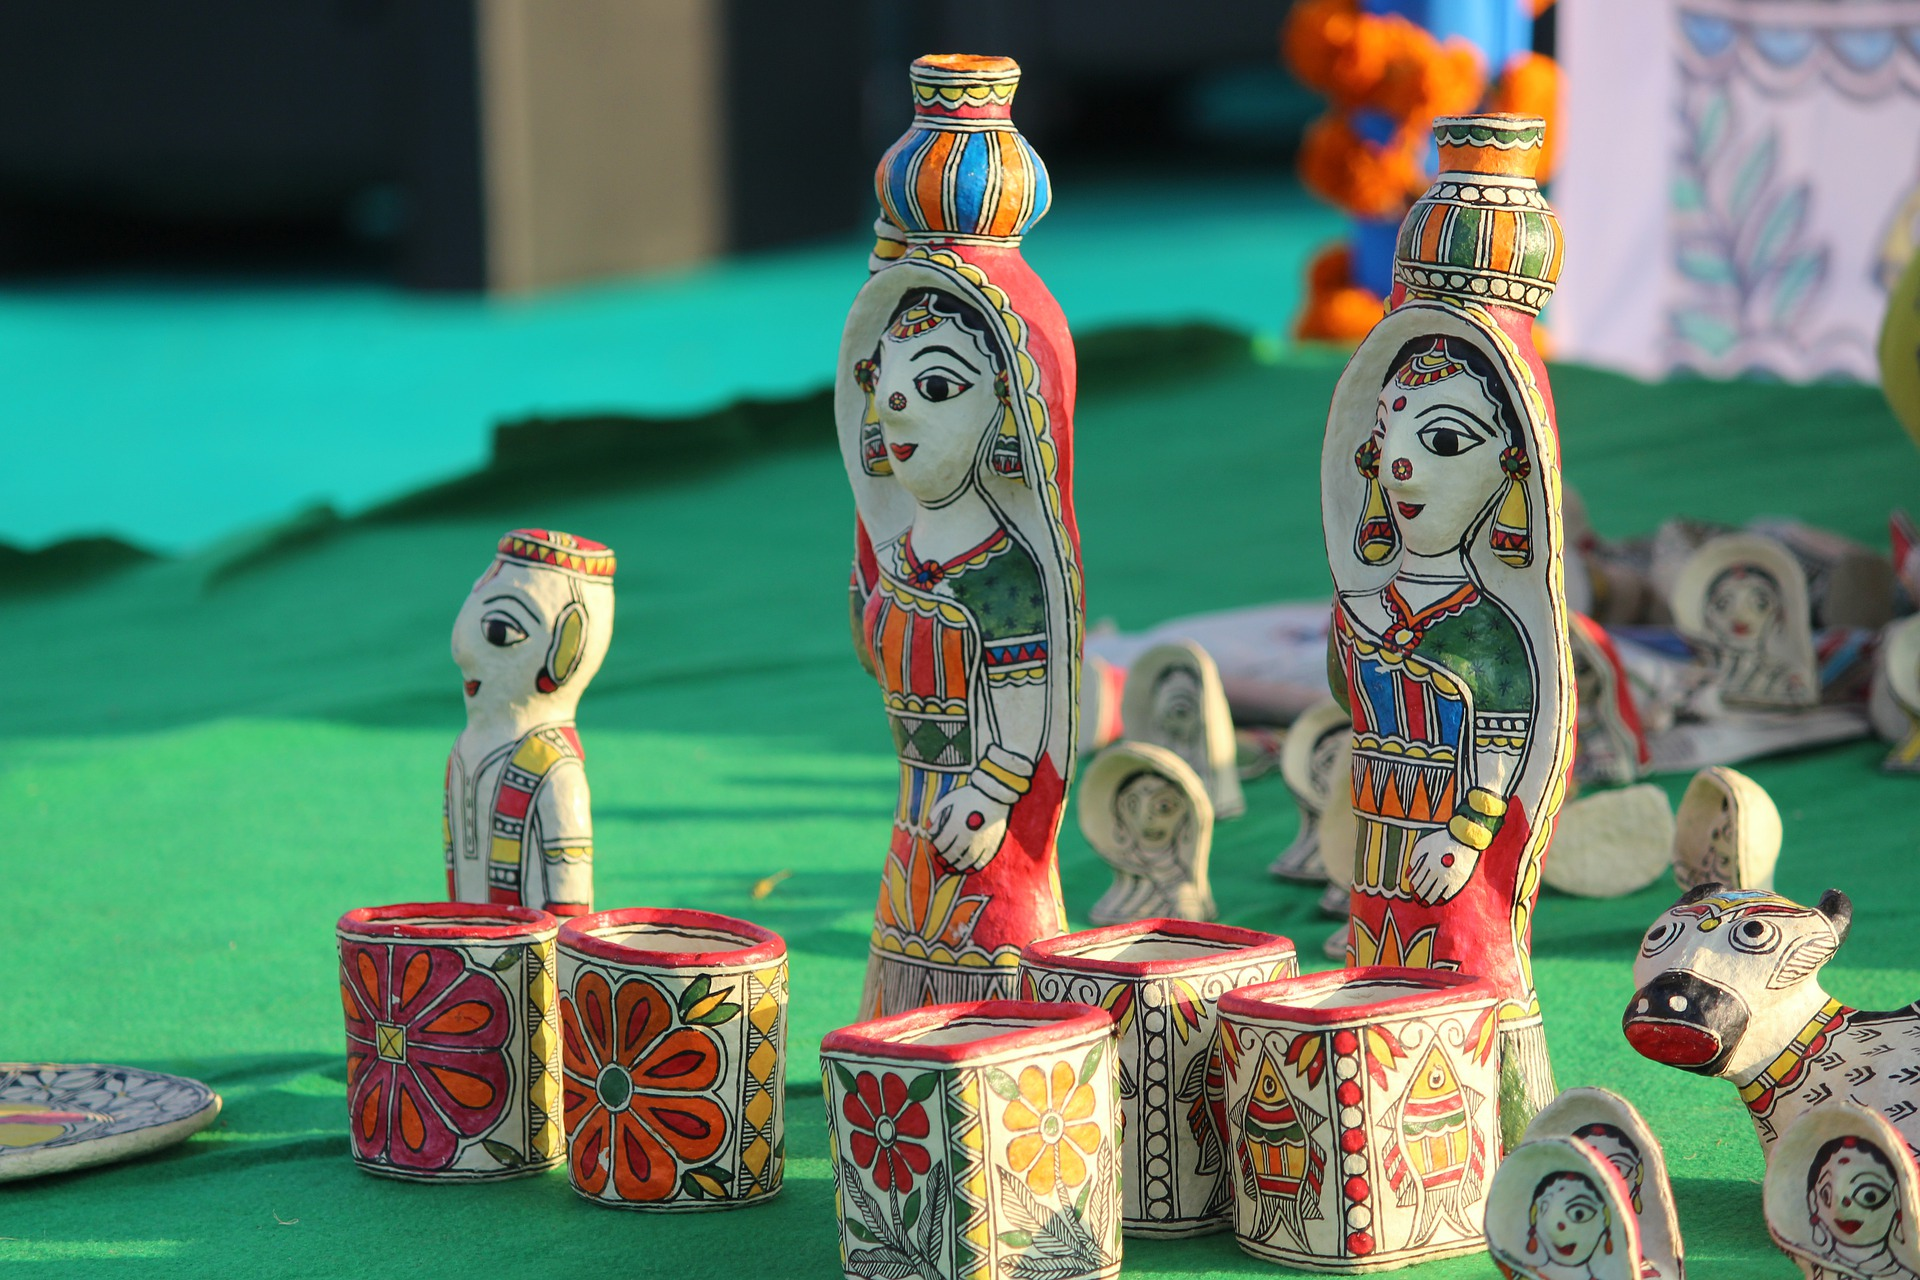 Decorative Colorful Figurines made in India